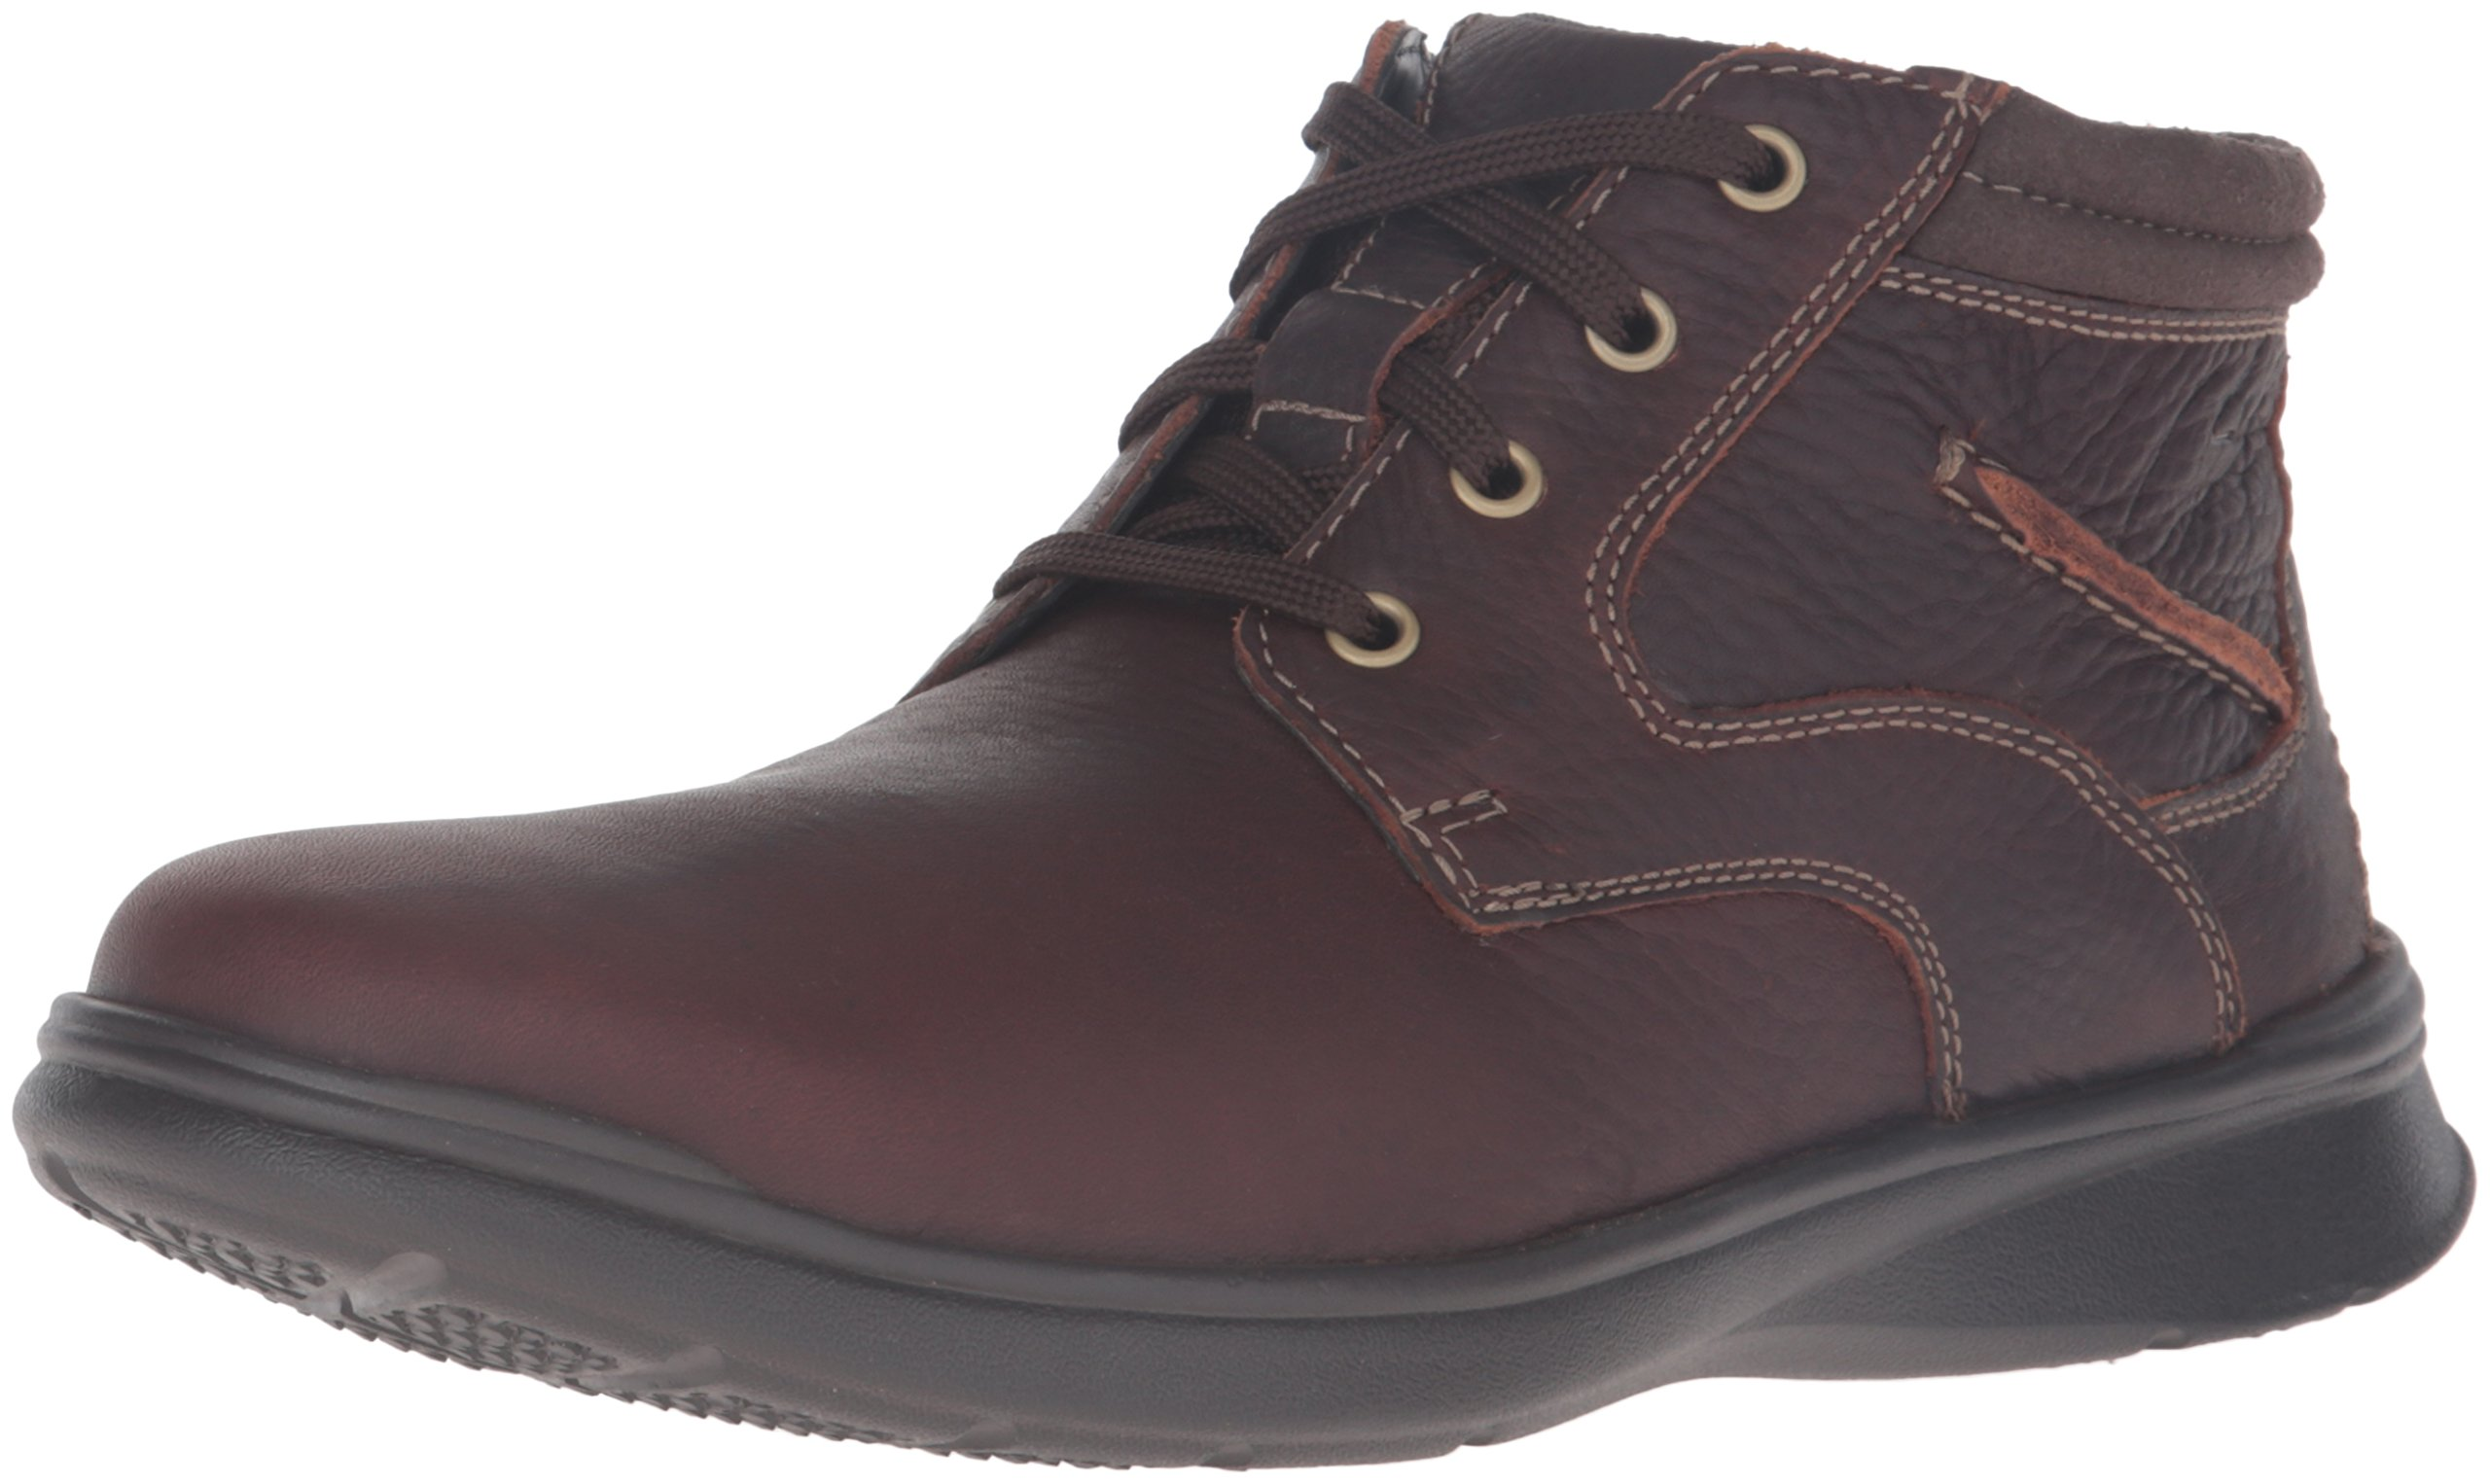 CLARKS Men's Cotrell Rise Chukka Boot, Brown Oily, 11.5 M US